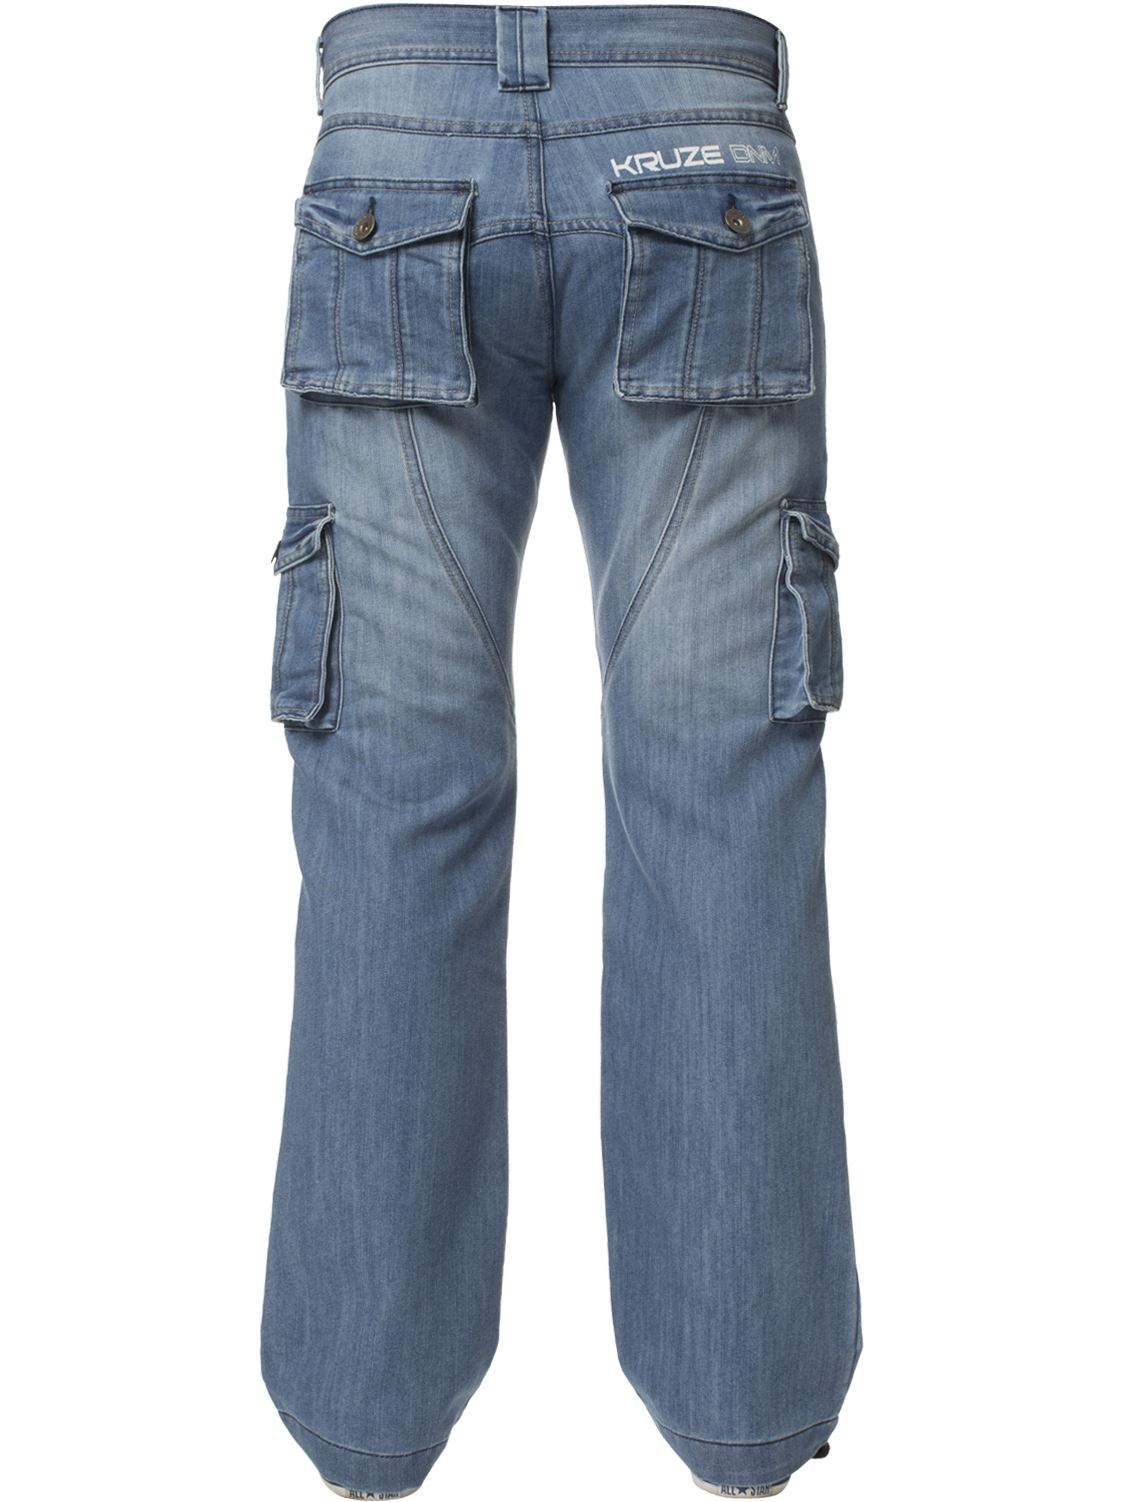 Mens-Cargo-Combat-Trousers-Jeans-Heavy-Duty-Work-Casual-Pants-Big-Tall-All-Sizes thumbnail 22